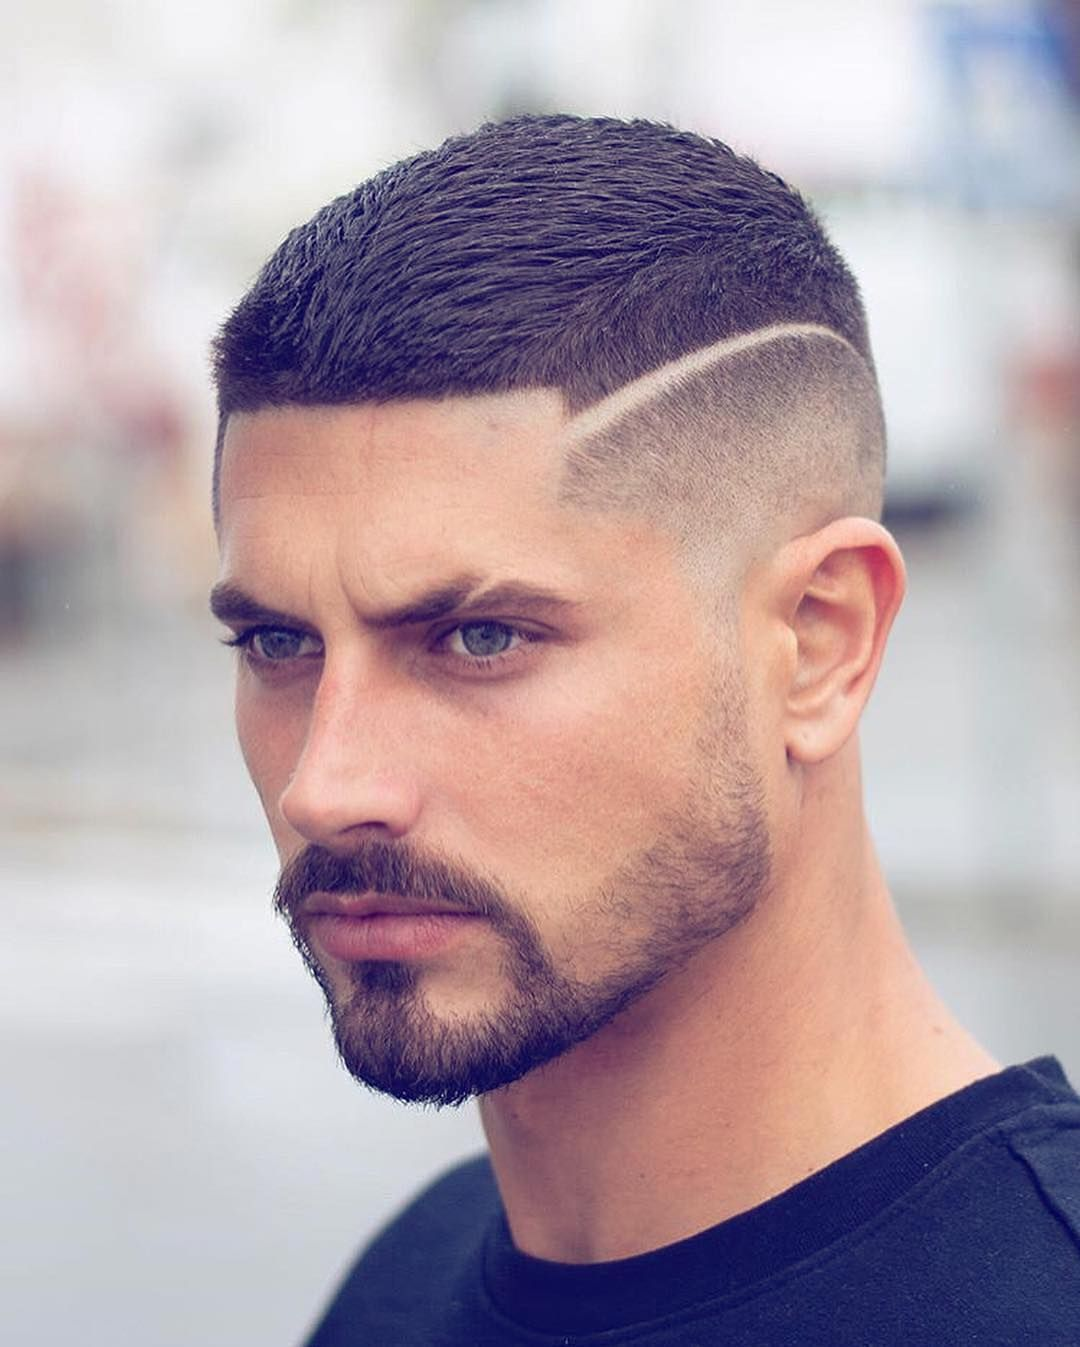 Fashion Style Hairstyle Hairgoals Menshair Barber Barberlove Barbershop Barbersince98 Coiffure Homme Coiffure Homme Court Coupe Homme Cheveux Courts